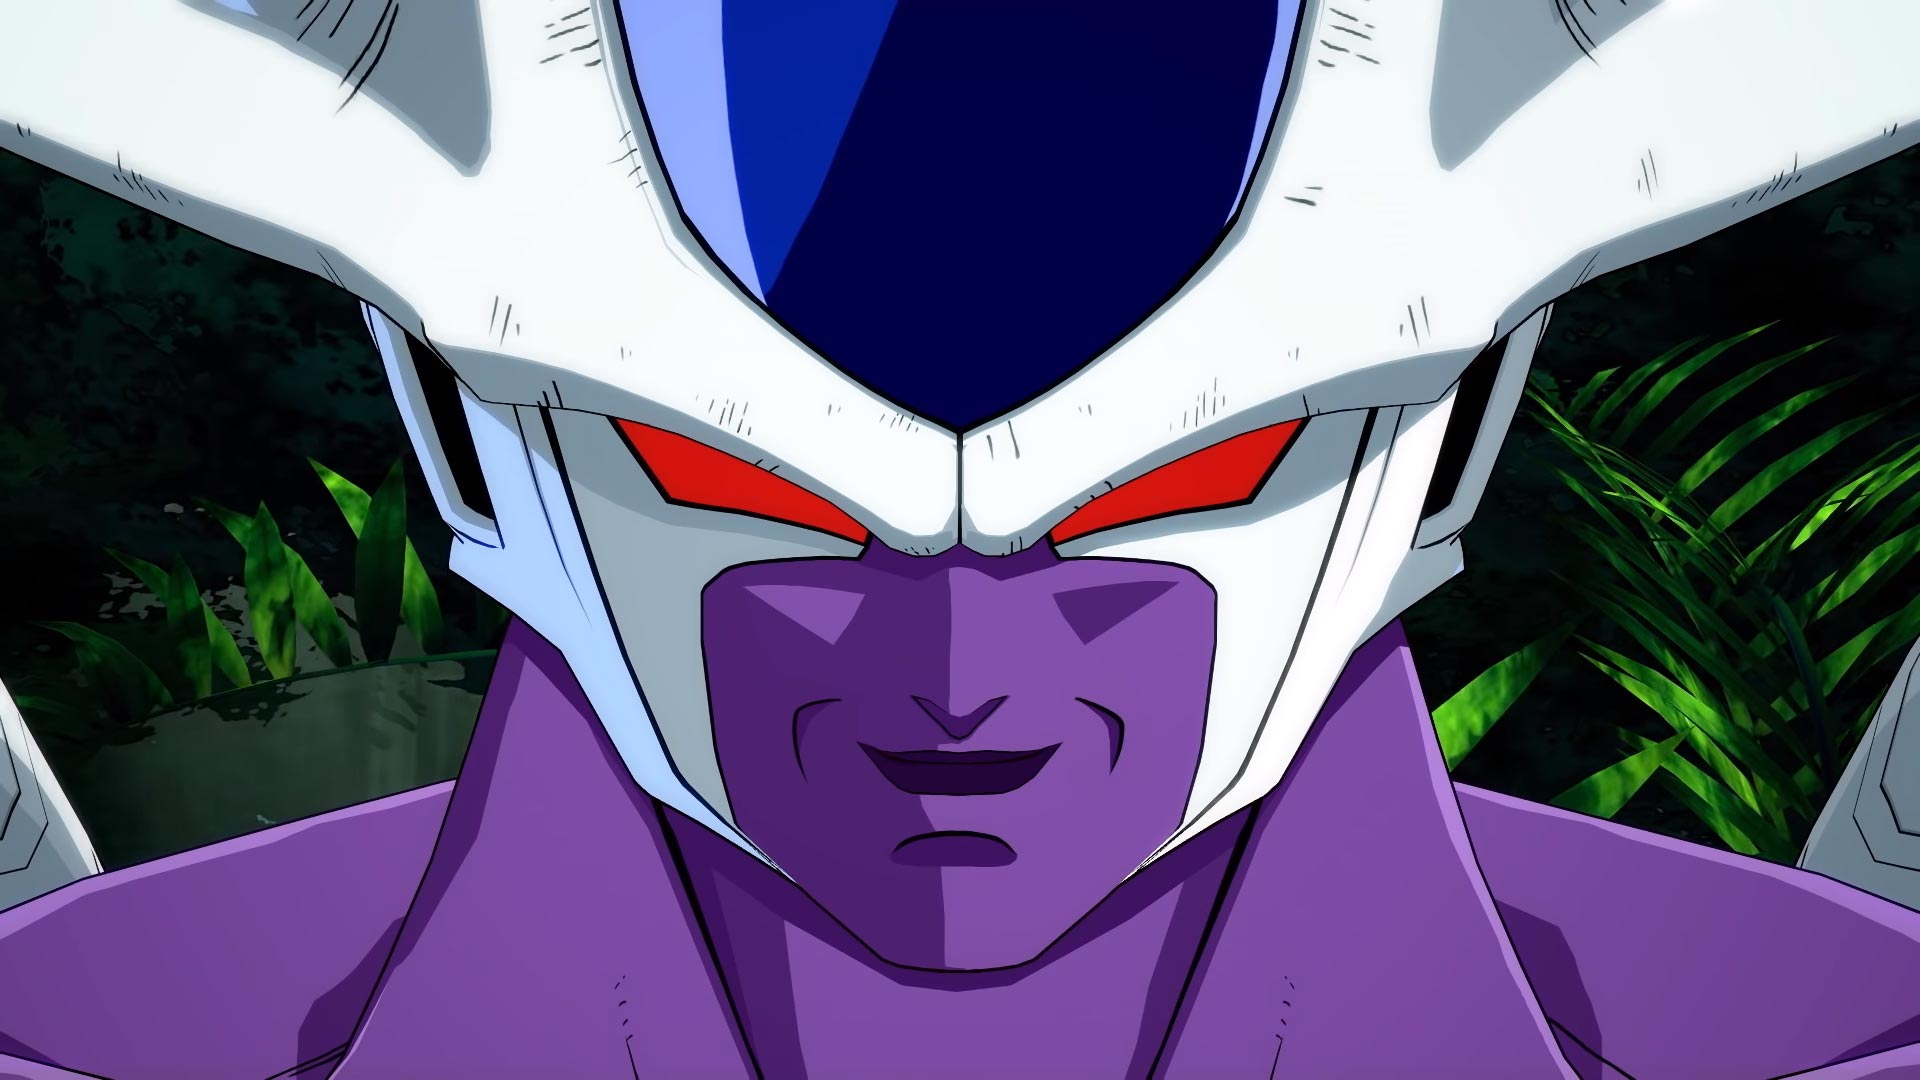 Cooler in Dragon Ball FighterZ 4 out of 9 image gallery